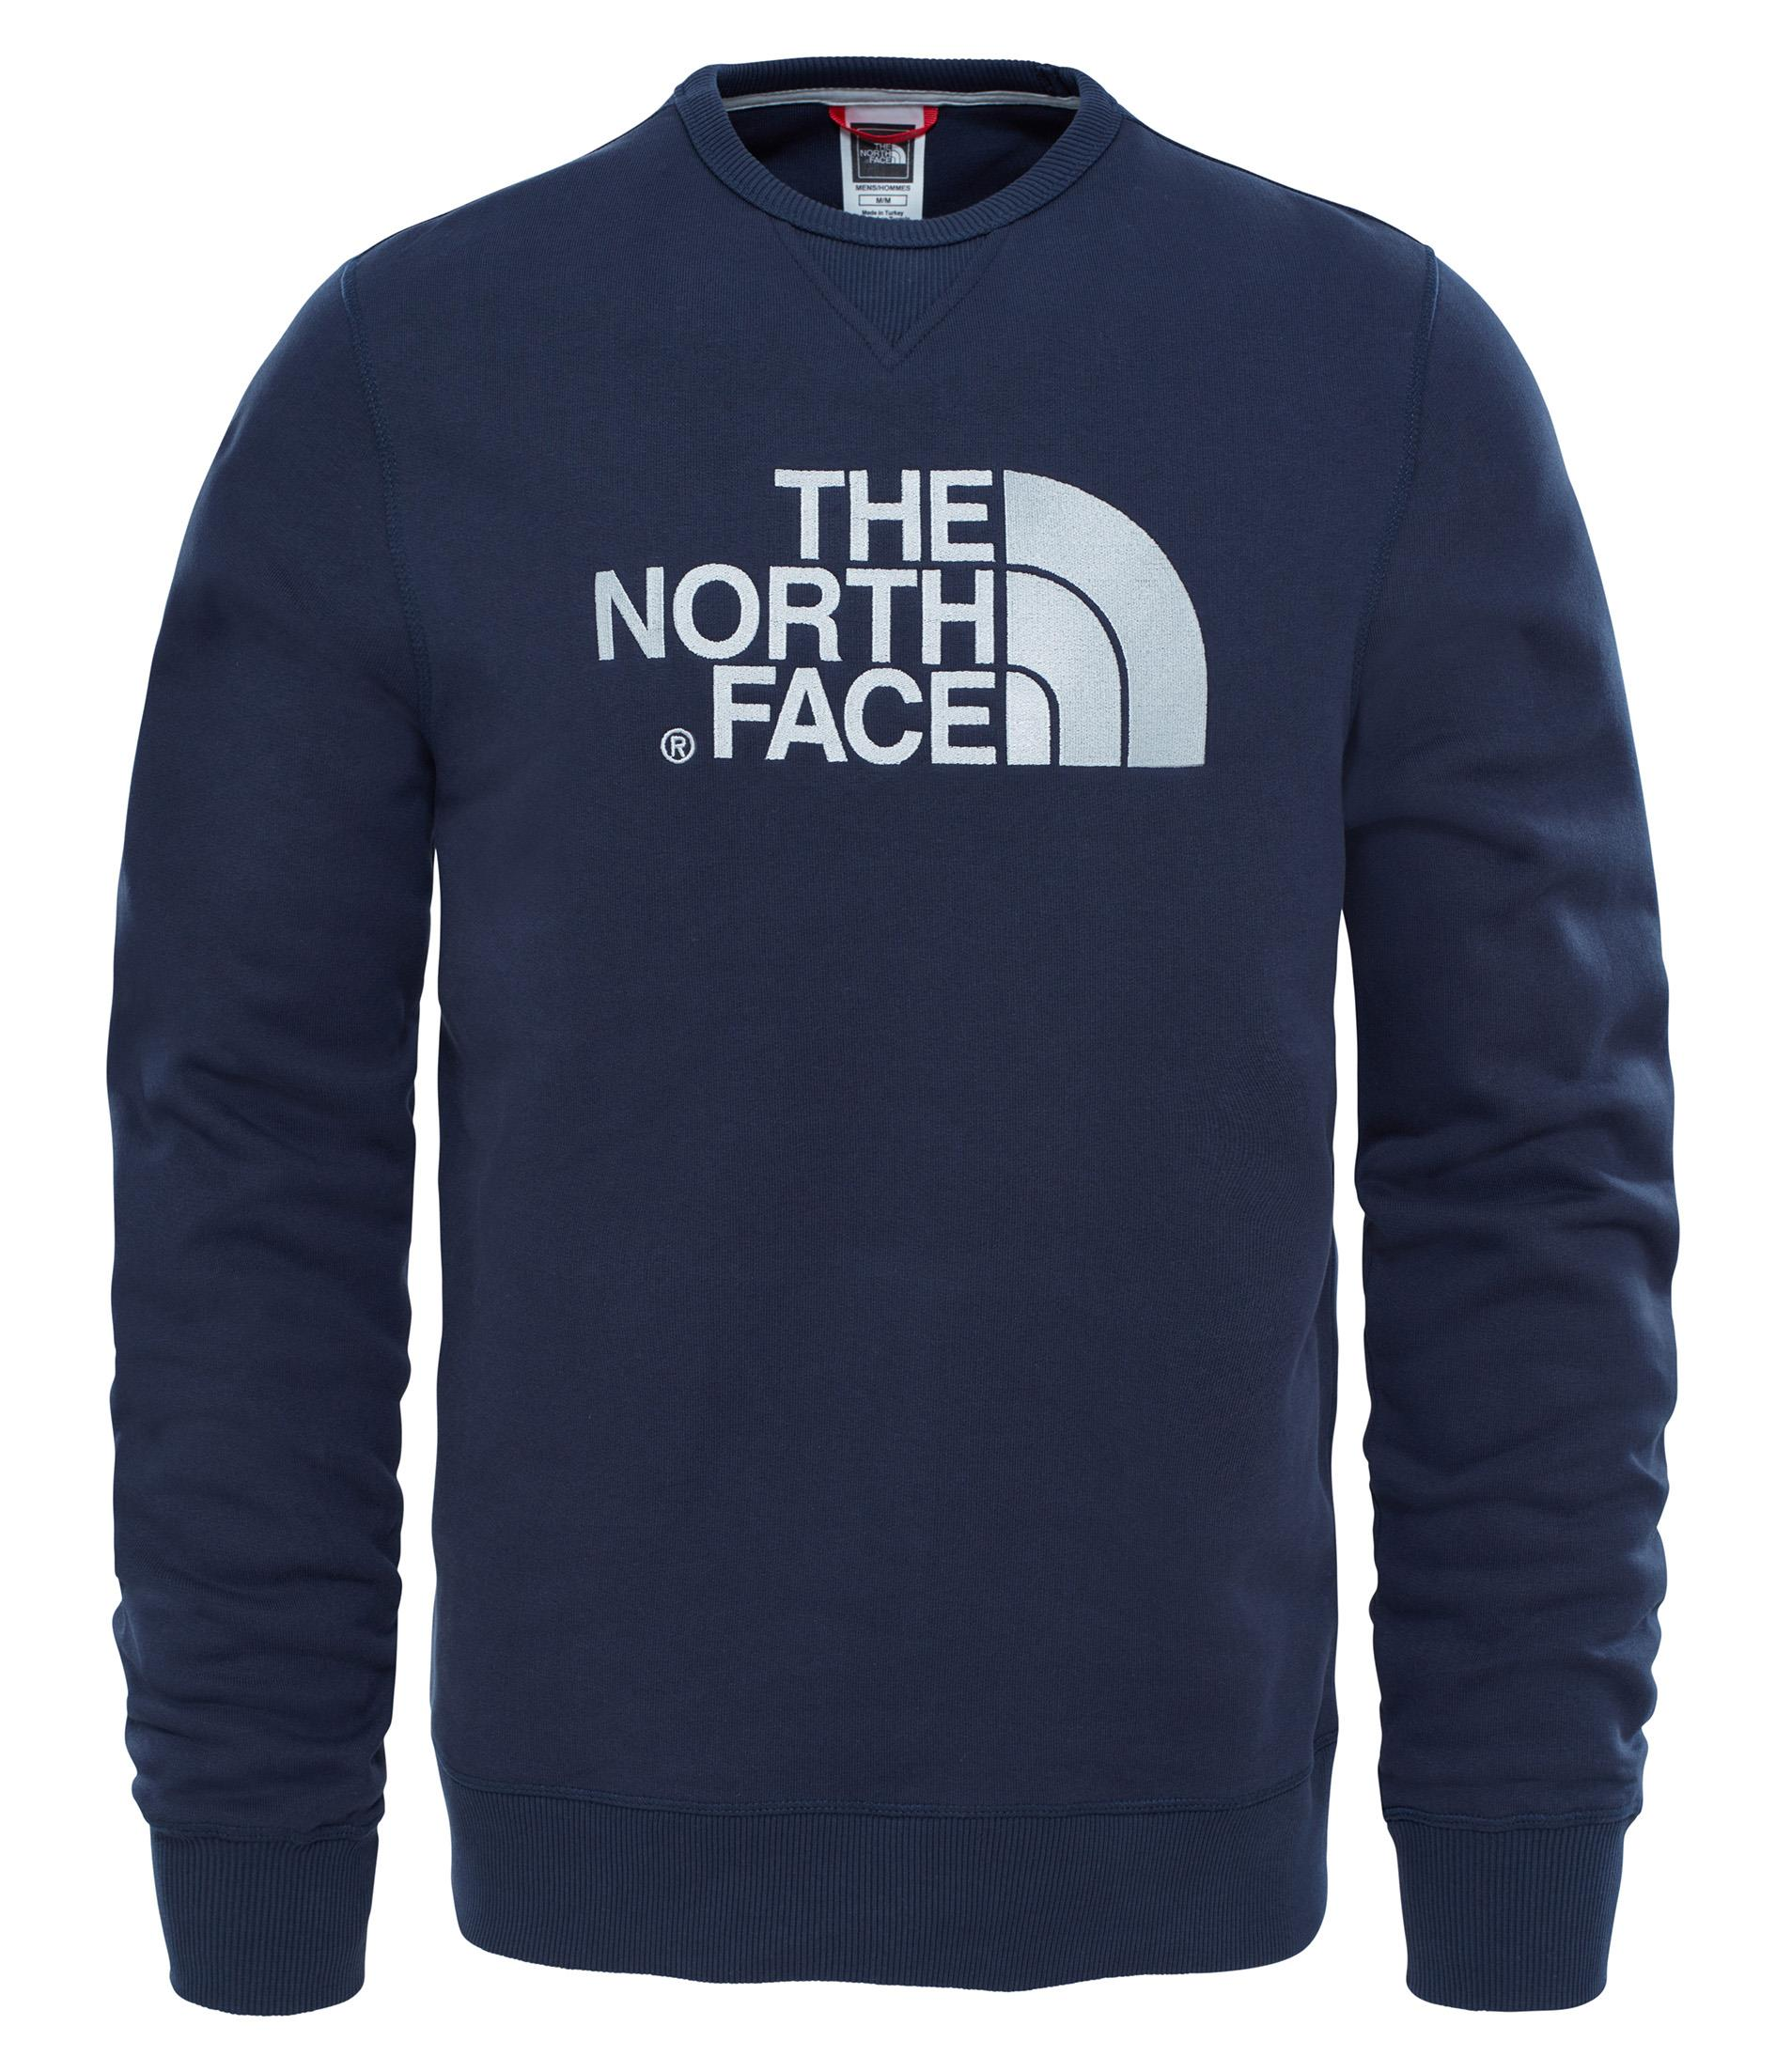 The North Face Drew Peak Crew Erkek Sweatshirt T92ZWRH2G